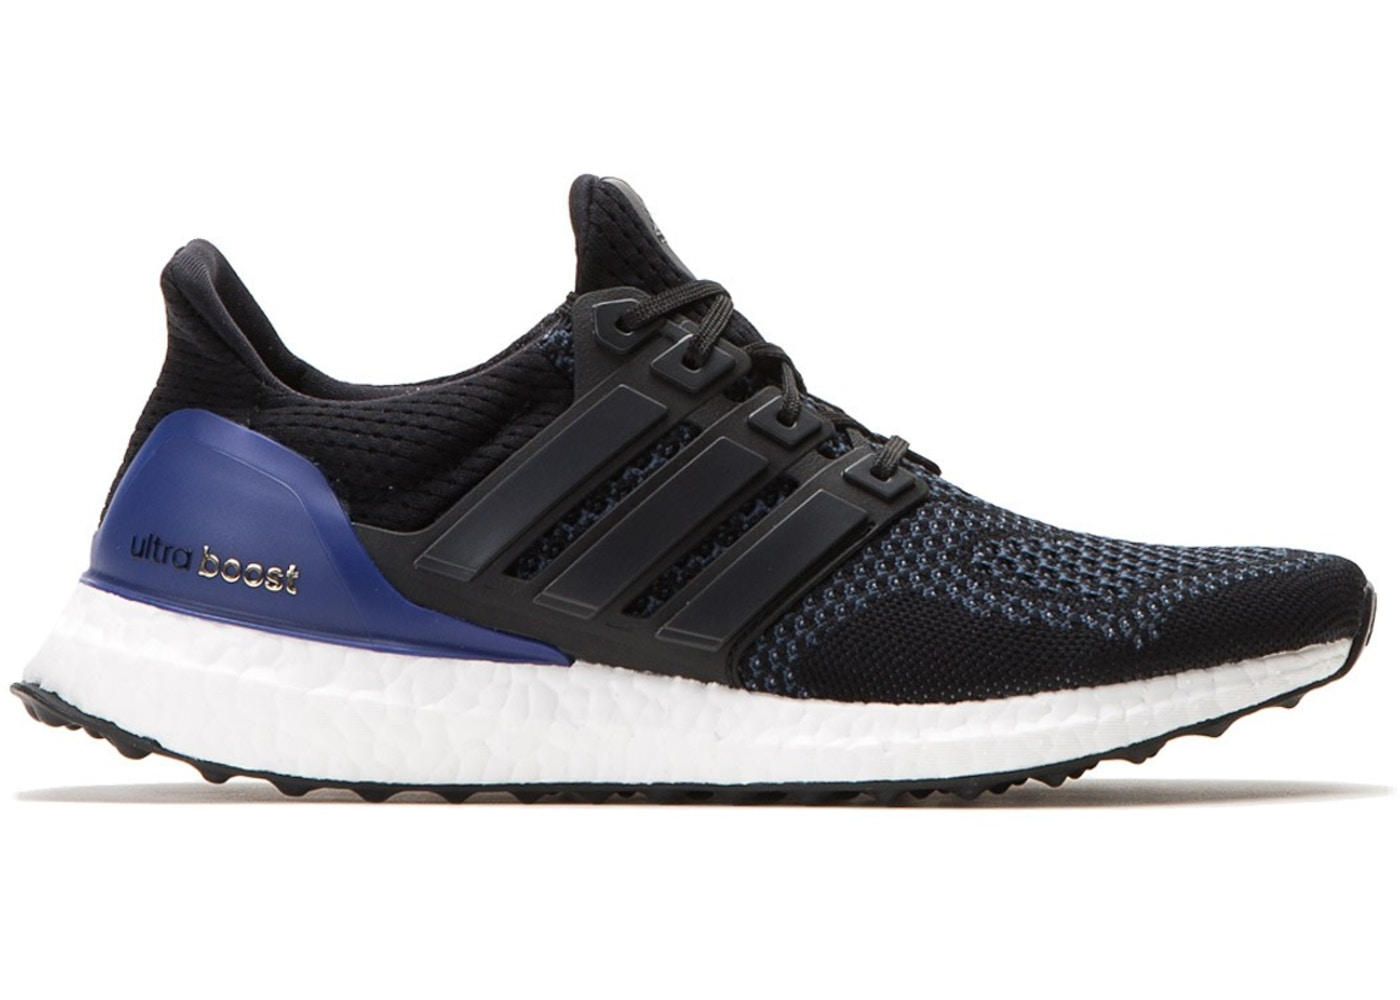 super popular aeb1c 1467b adidas Ultra Boost 1.0 OG Black Gold Purple (W) - B27172